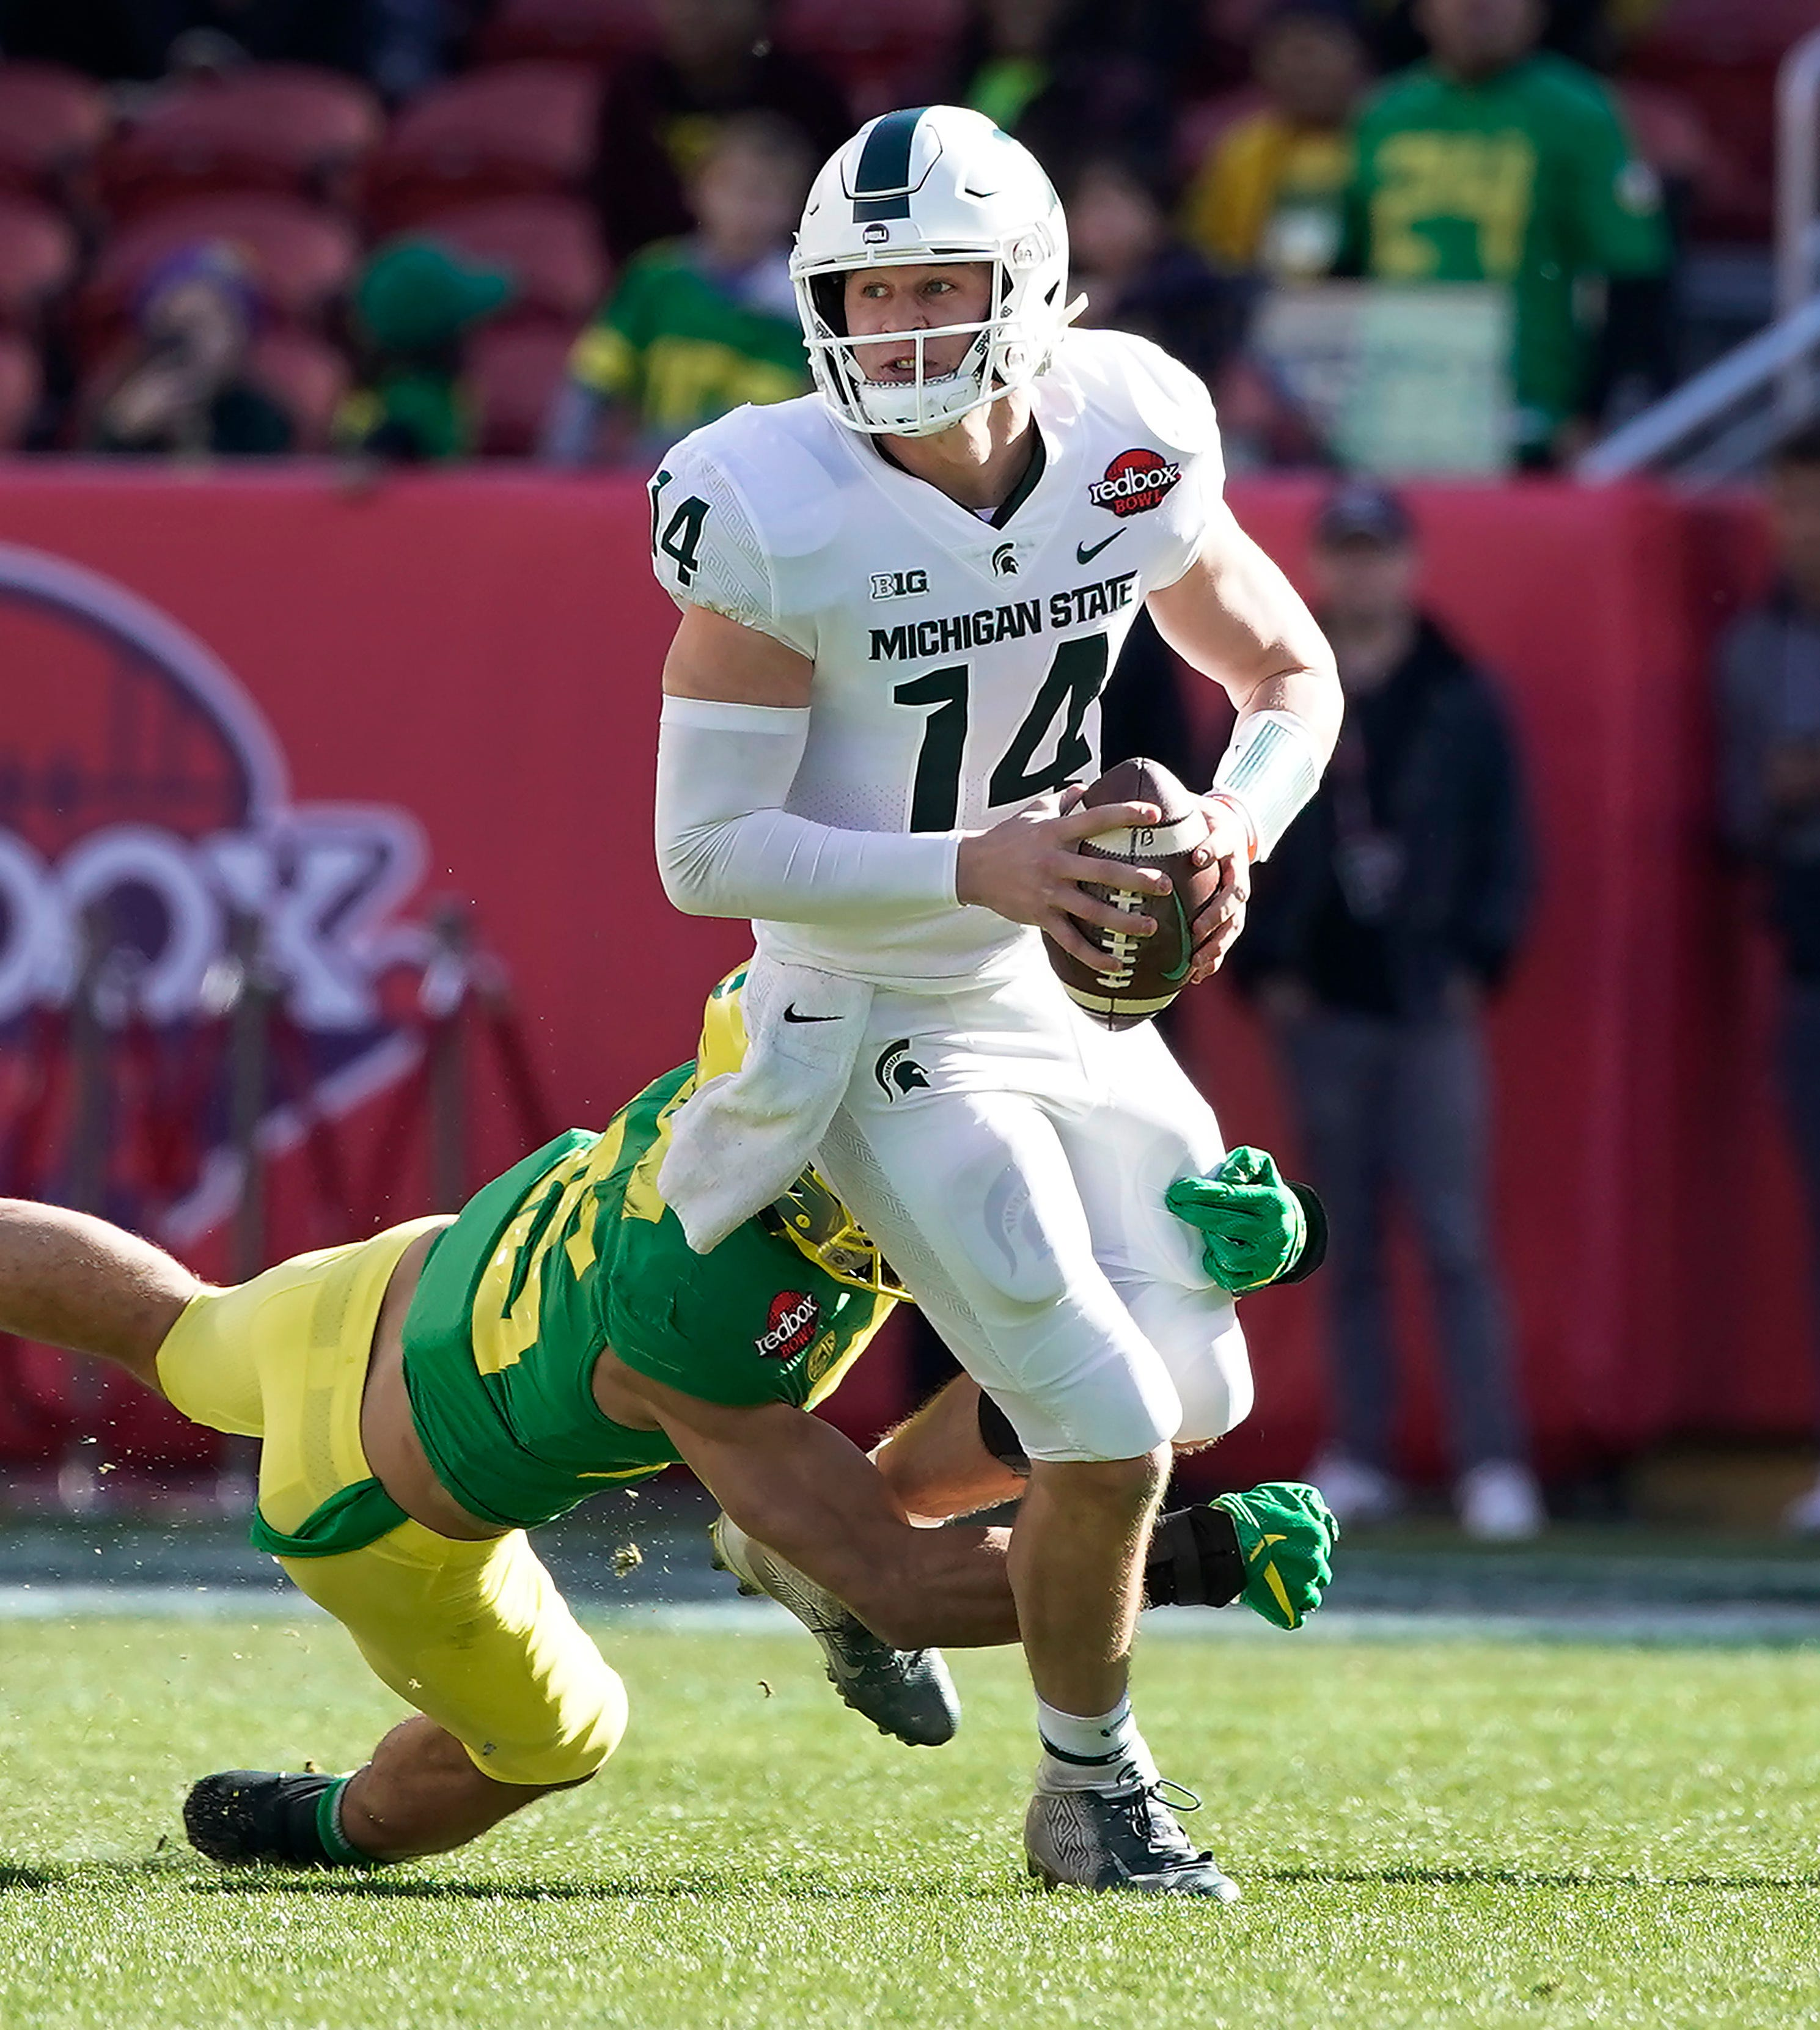 Michigan State quarterback Brian Lewerke is sacked by Oregon's Brady Breeze during the first half of the Redbox Bowl on Monday, Dec. 31, 2018, in Santa Clara, Calif.